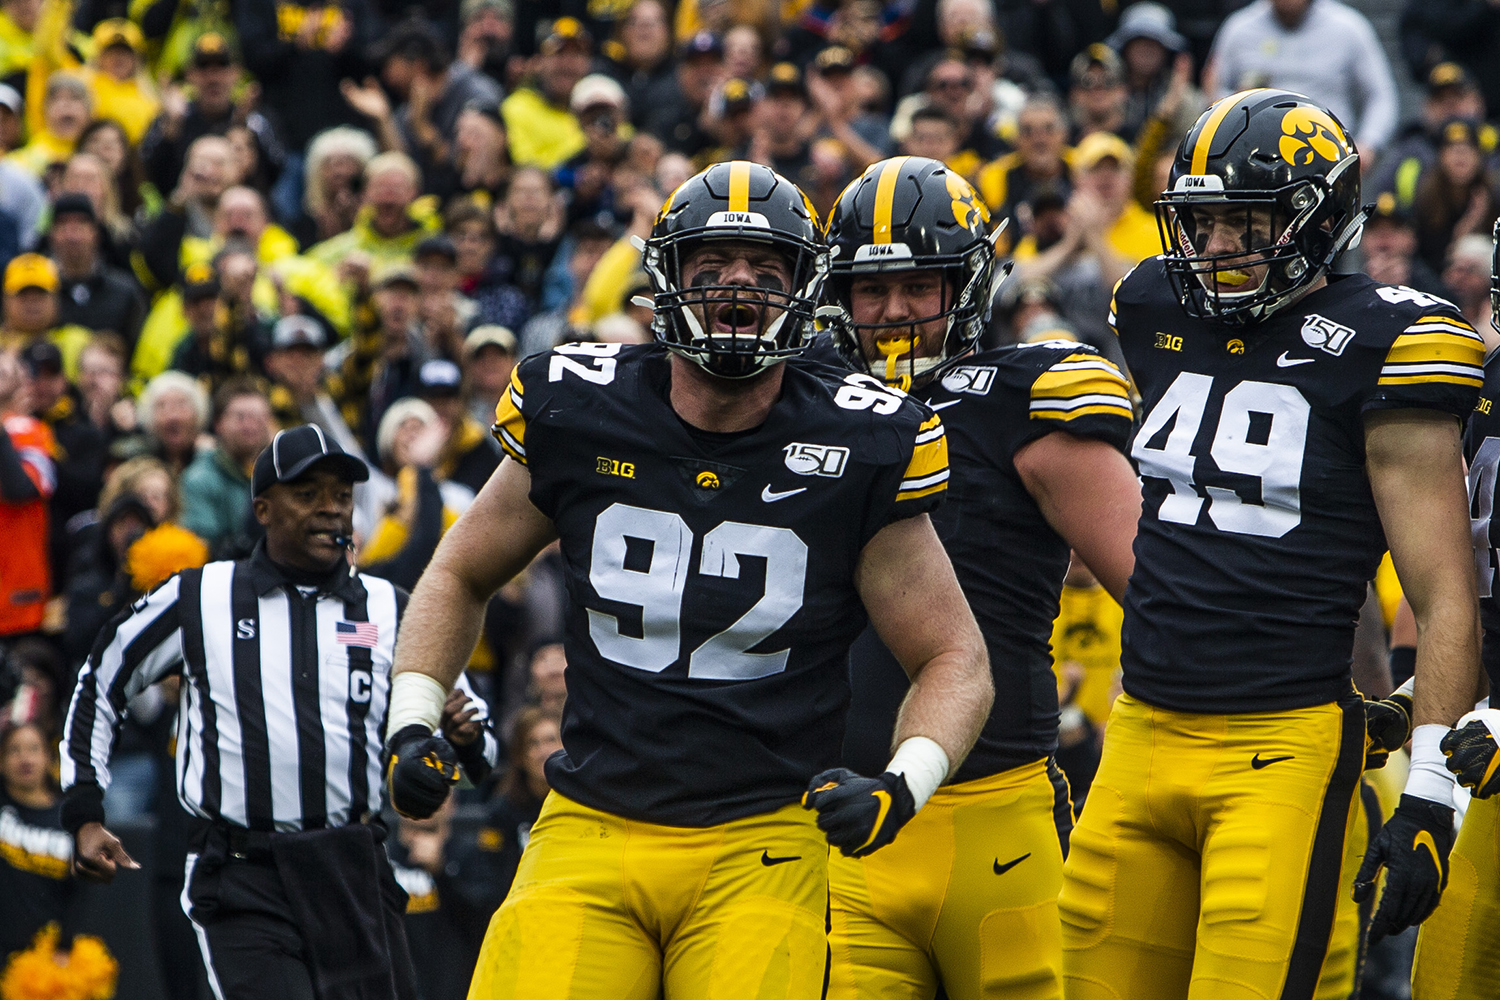 Iowa defensive lineman John Waggoner celebrates during the Iowa football game against Purdue at Kinnick Stadium on Saturday, Oct. 19, 2019. The Hawkeyes defeated the Boilermakers 26-20.